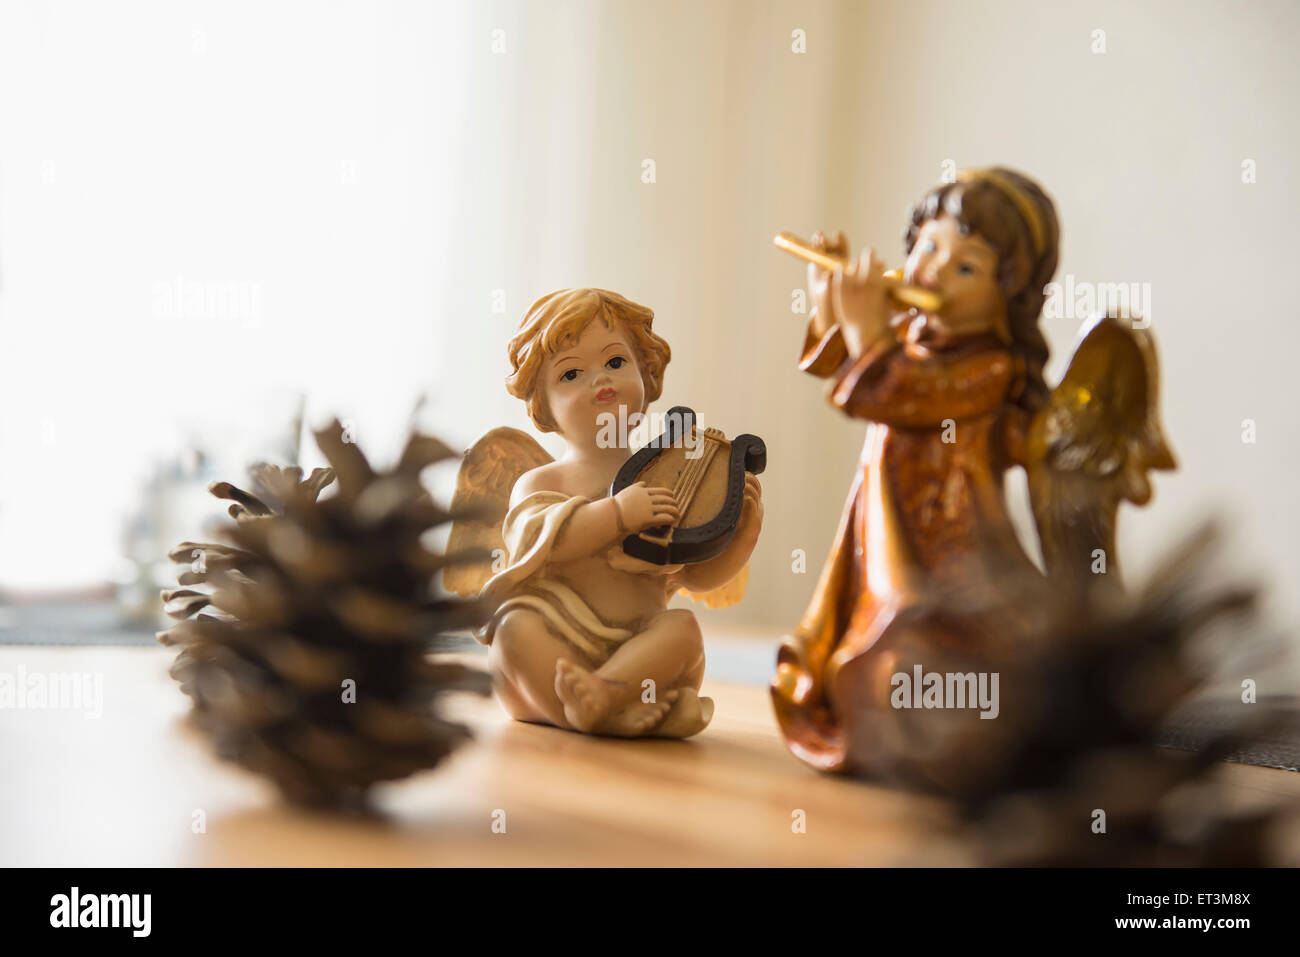 Decorative Christmas angel figurines with musical instruments and ...